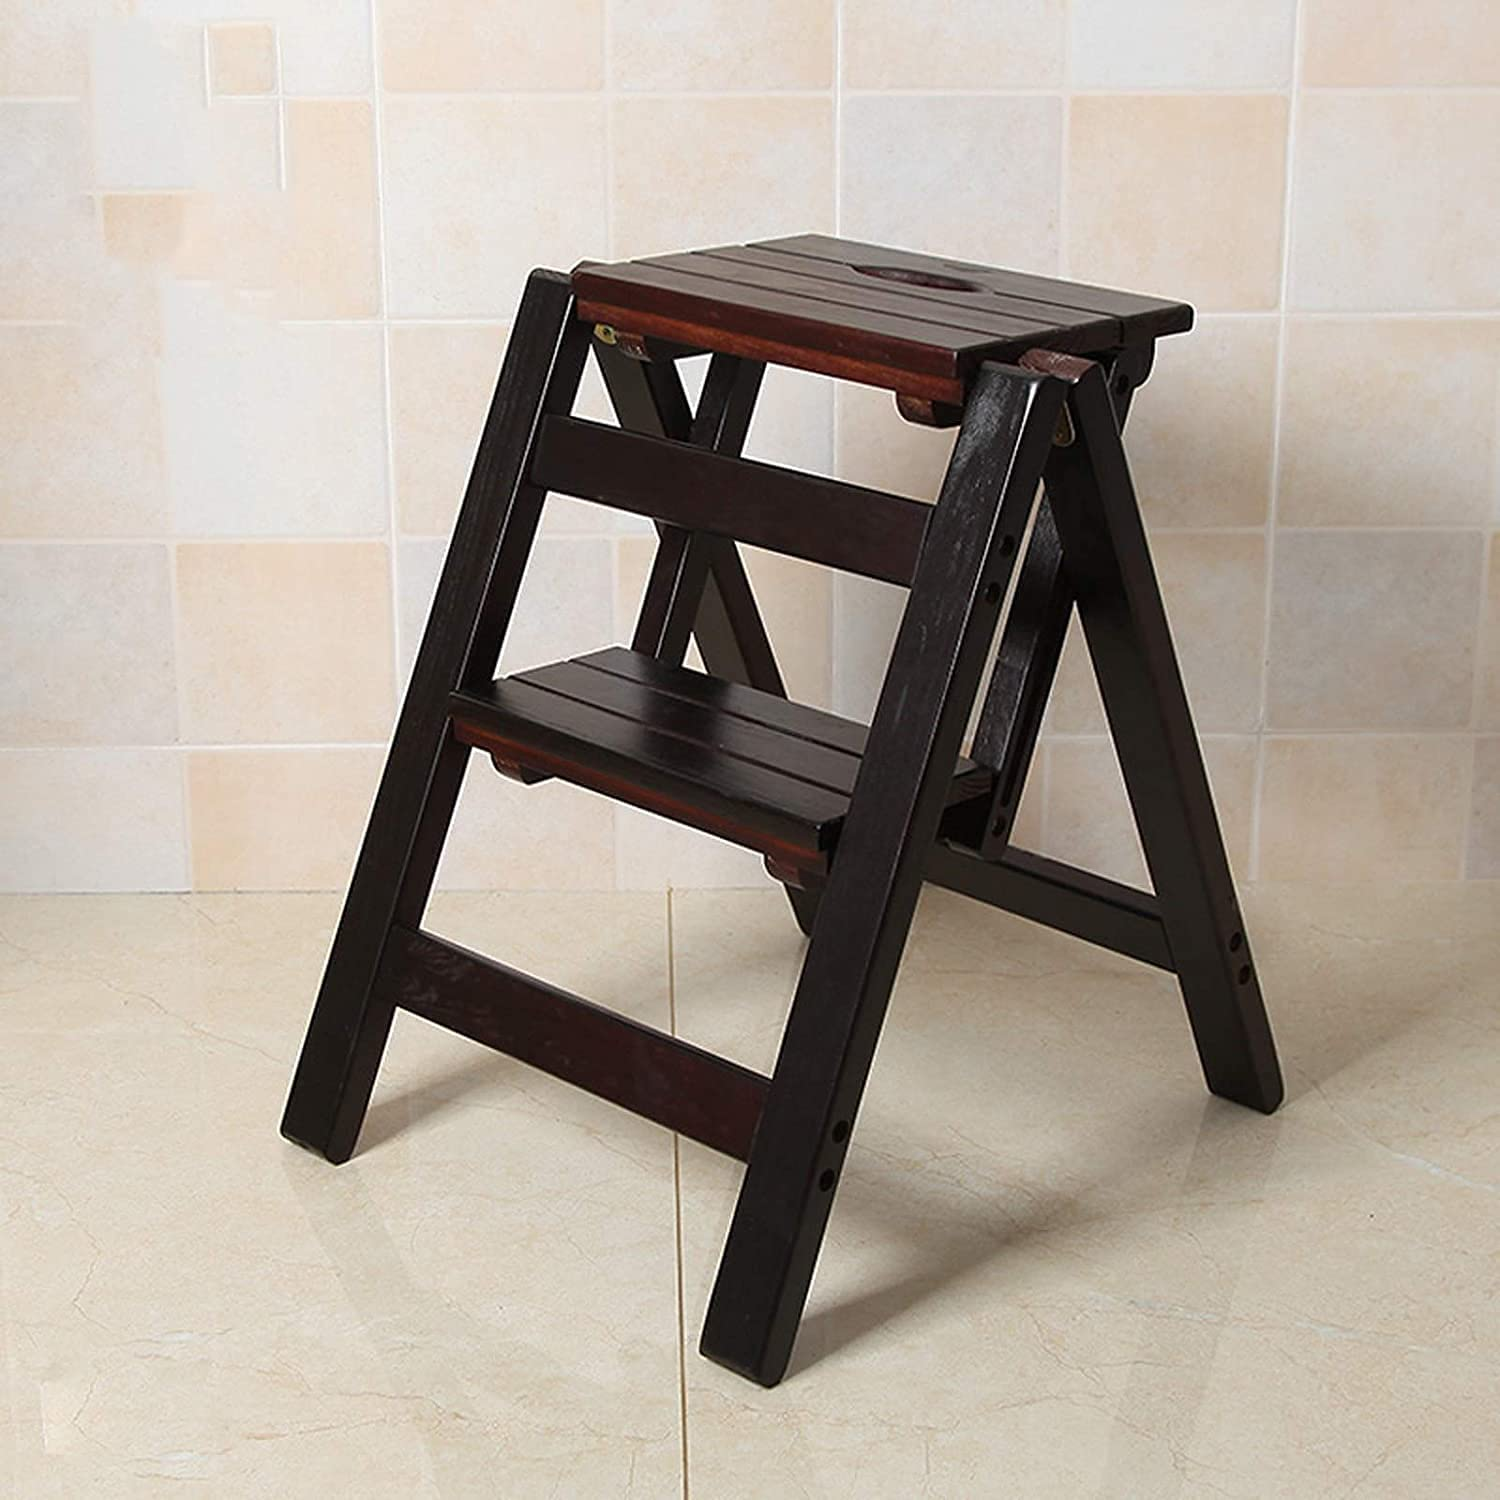 CNZXCO Kitchen Step Stool Fixed price for sale Solid Manufacturer OFFicial shop La Wood Stepladders Folding